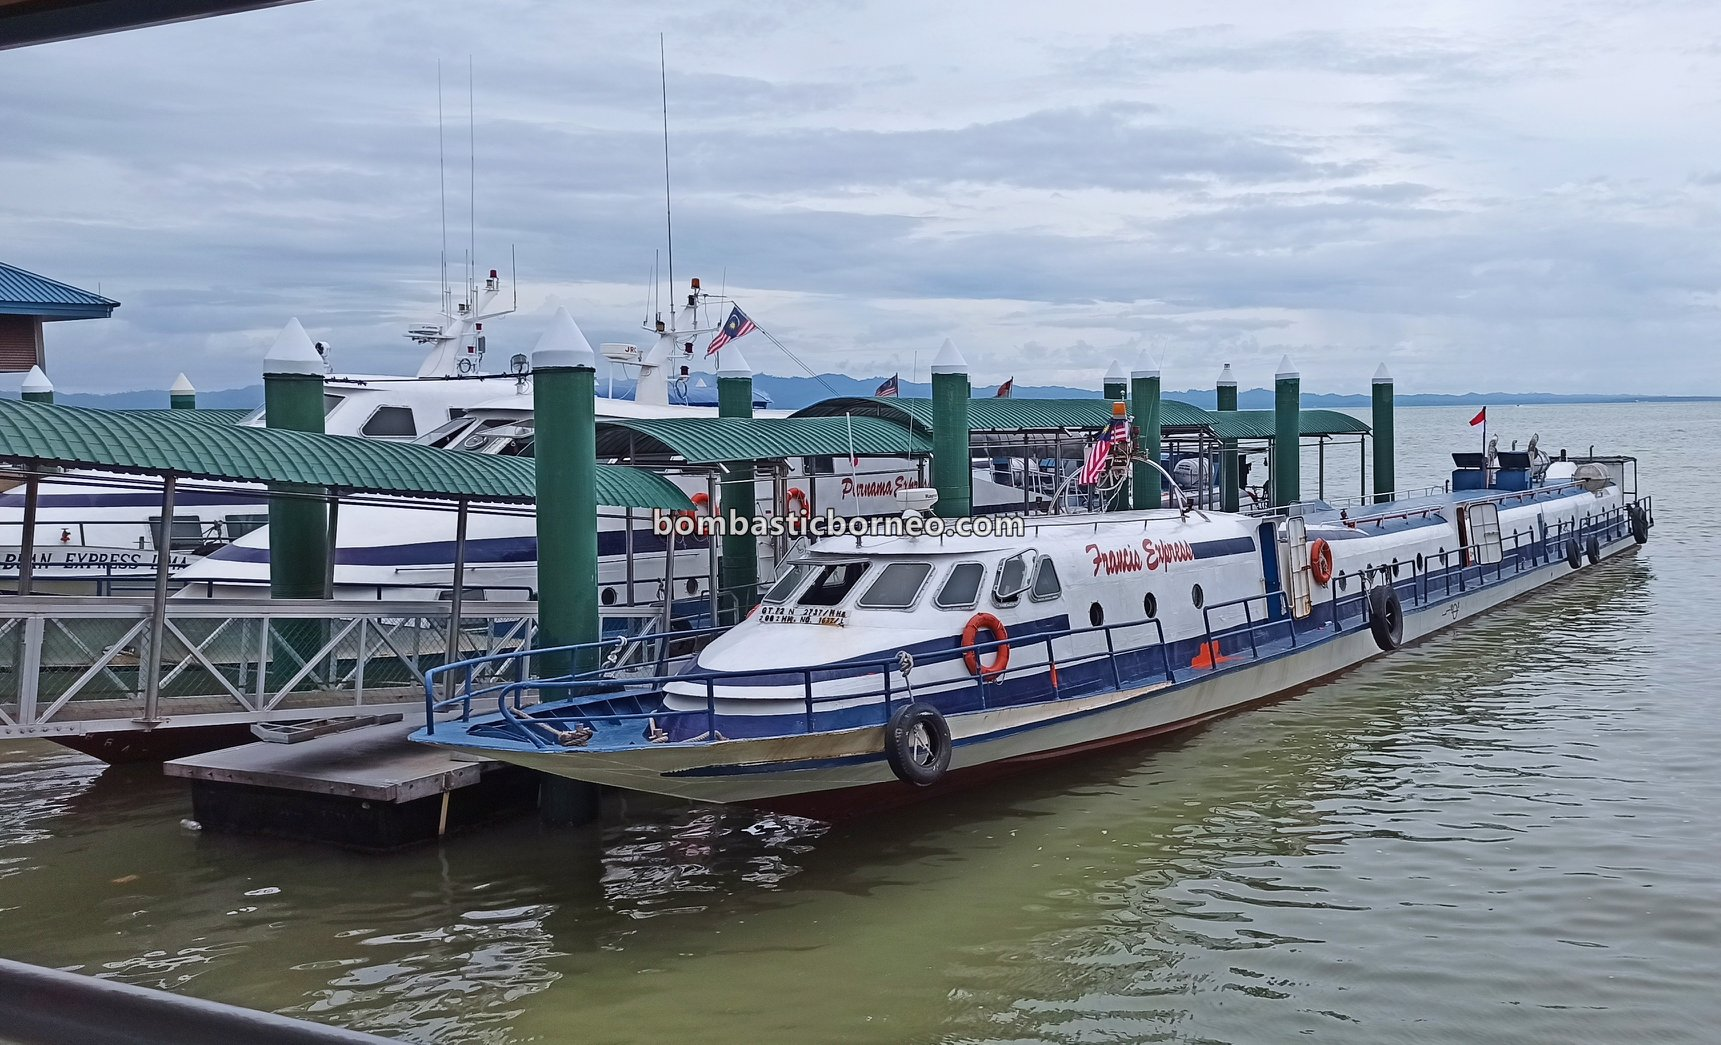 Ferry terminal, Express Boat Ride, speed boat, exploration, International, Kapal Besar, MV Tawindo, port, Sabah, Tawau, Malaysia, Transportation, travel guide, Cross Border, Borneo,